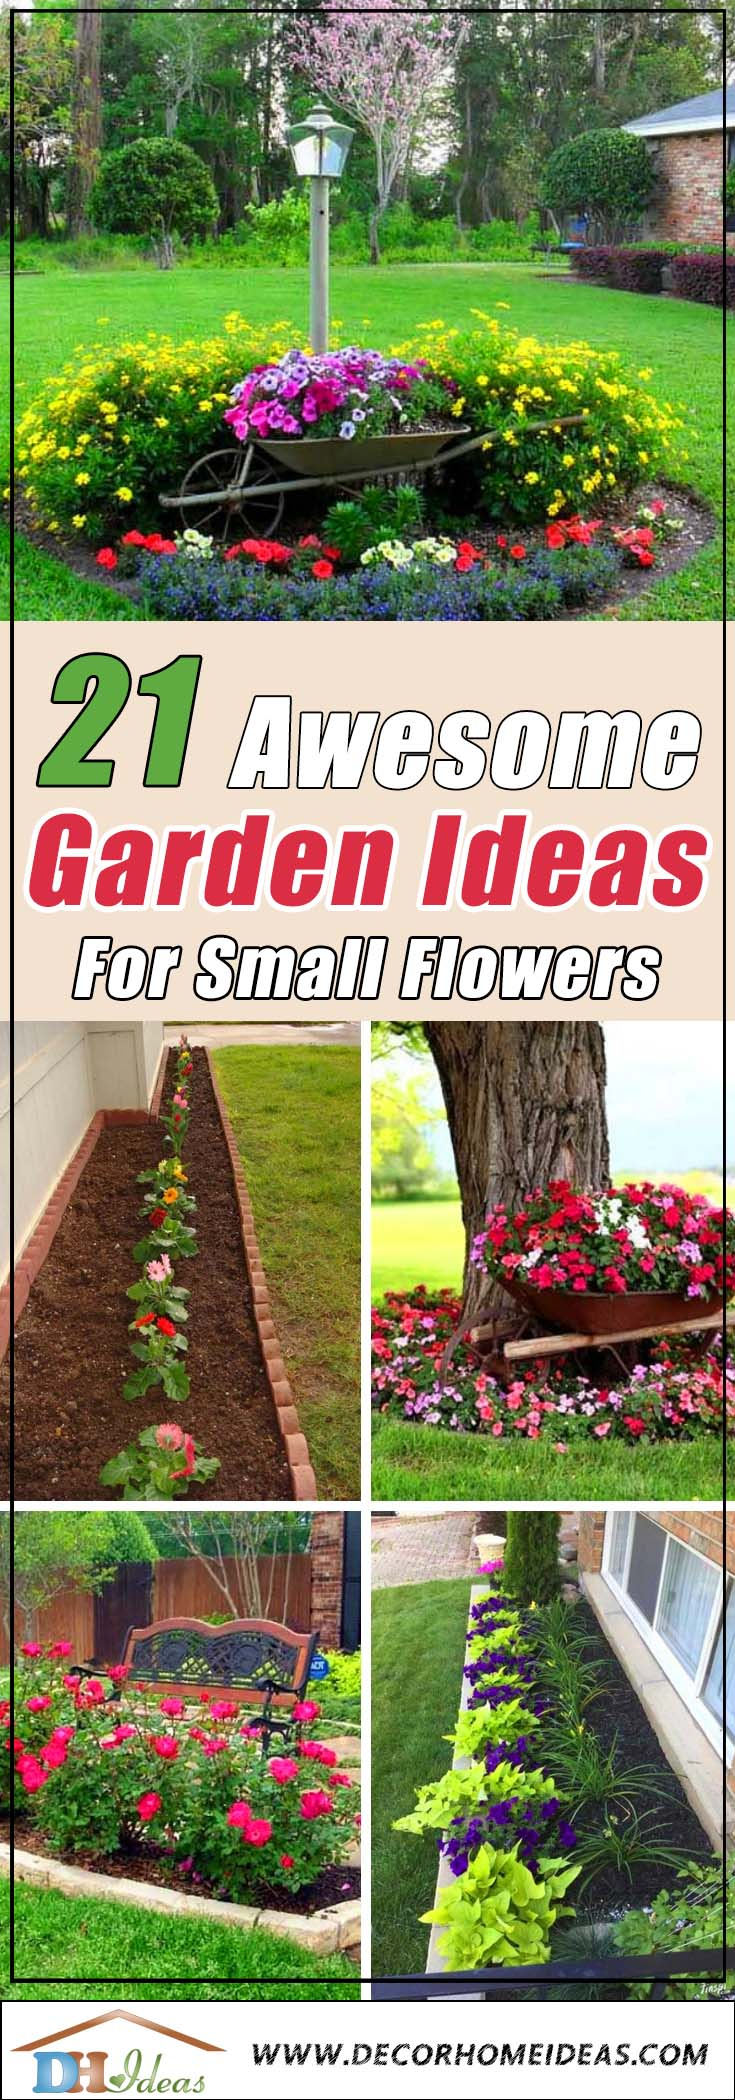 21 Awesome Garden Ideas For Small Flowers #flowerbed #garden #gardenideas #gardening #landscaping #decorhomeideas